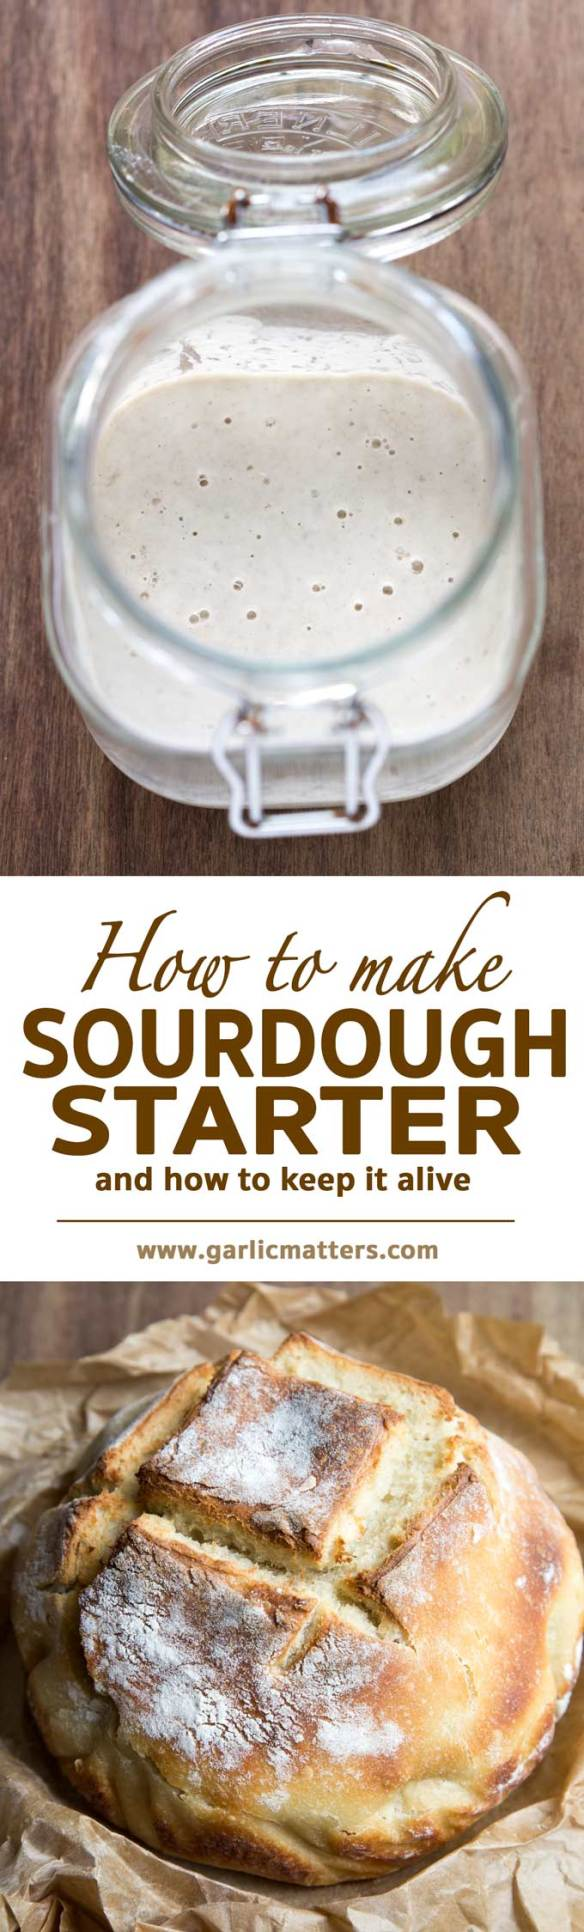 Learn how to make best sourdough starter with wild yeast for the most delicious sourdough bread. Step by step instructions and problem solving.